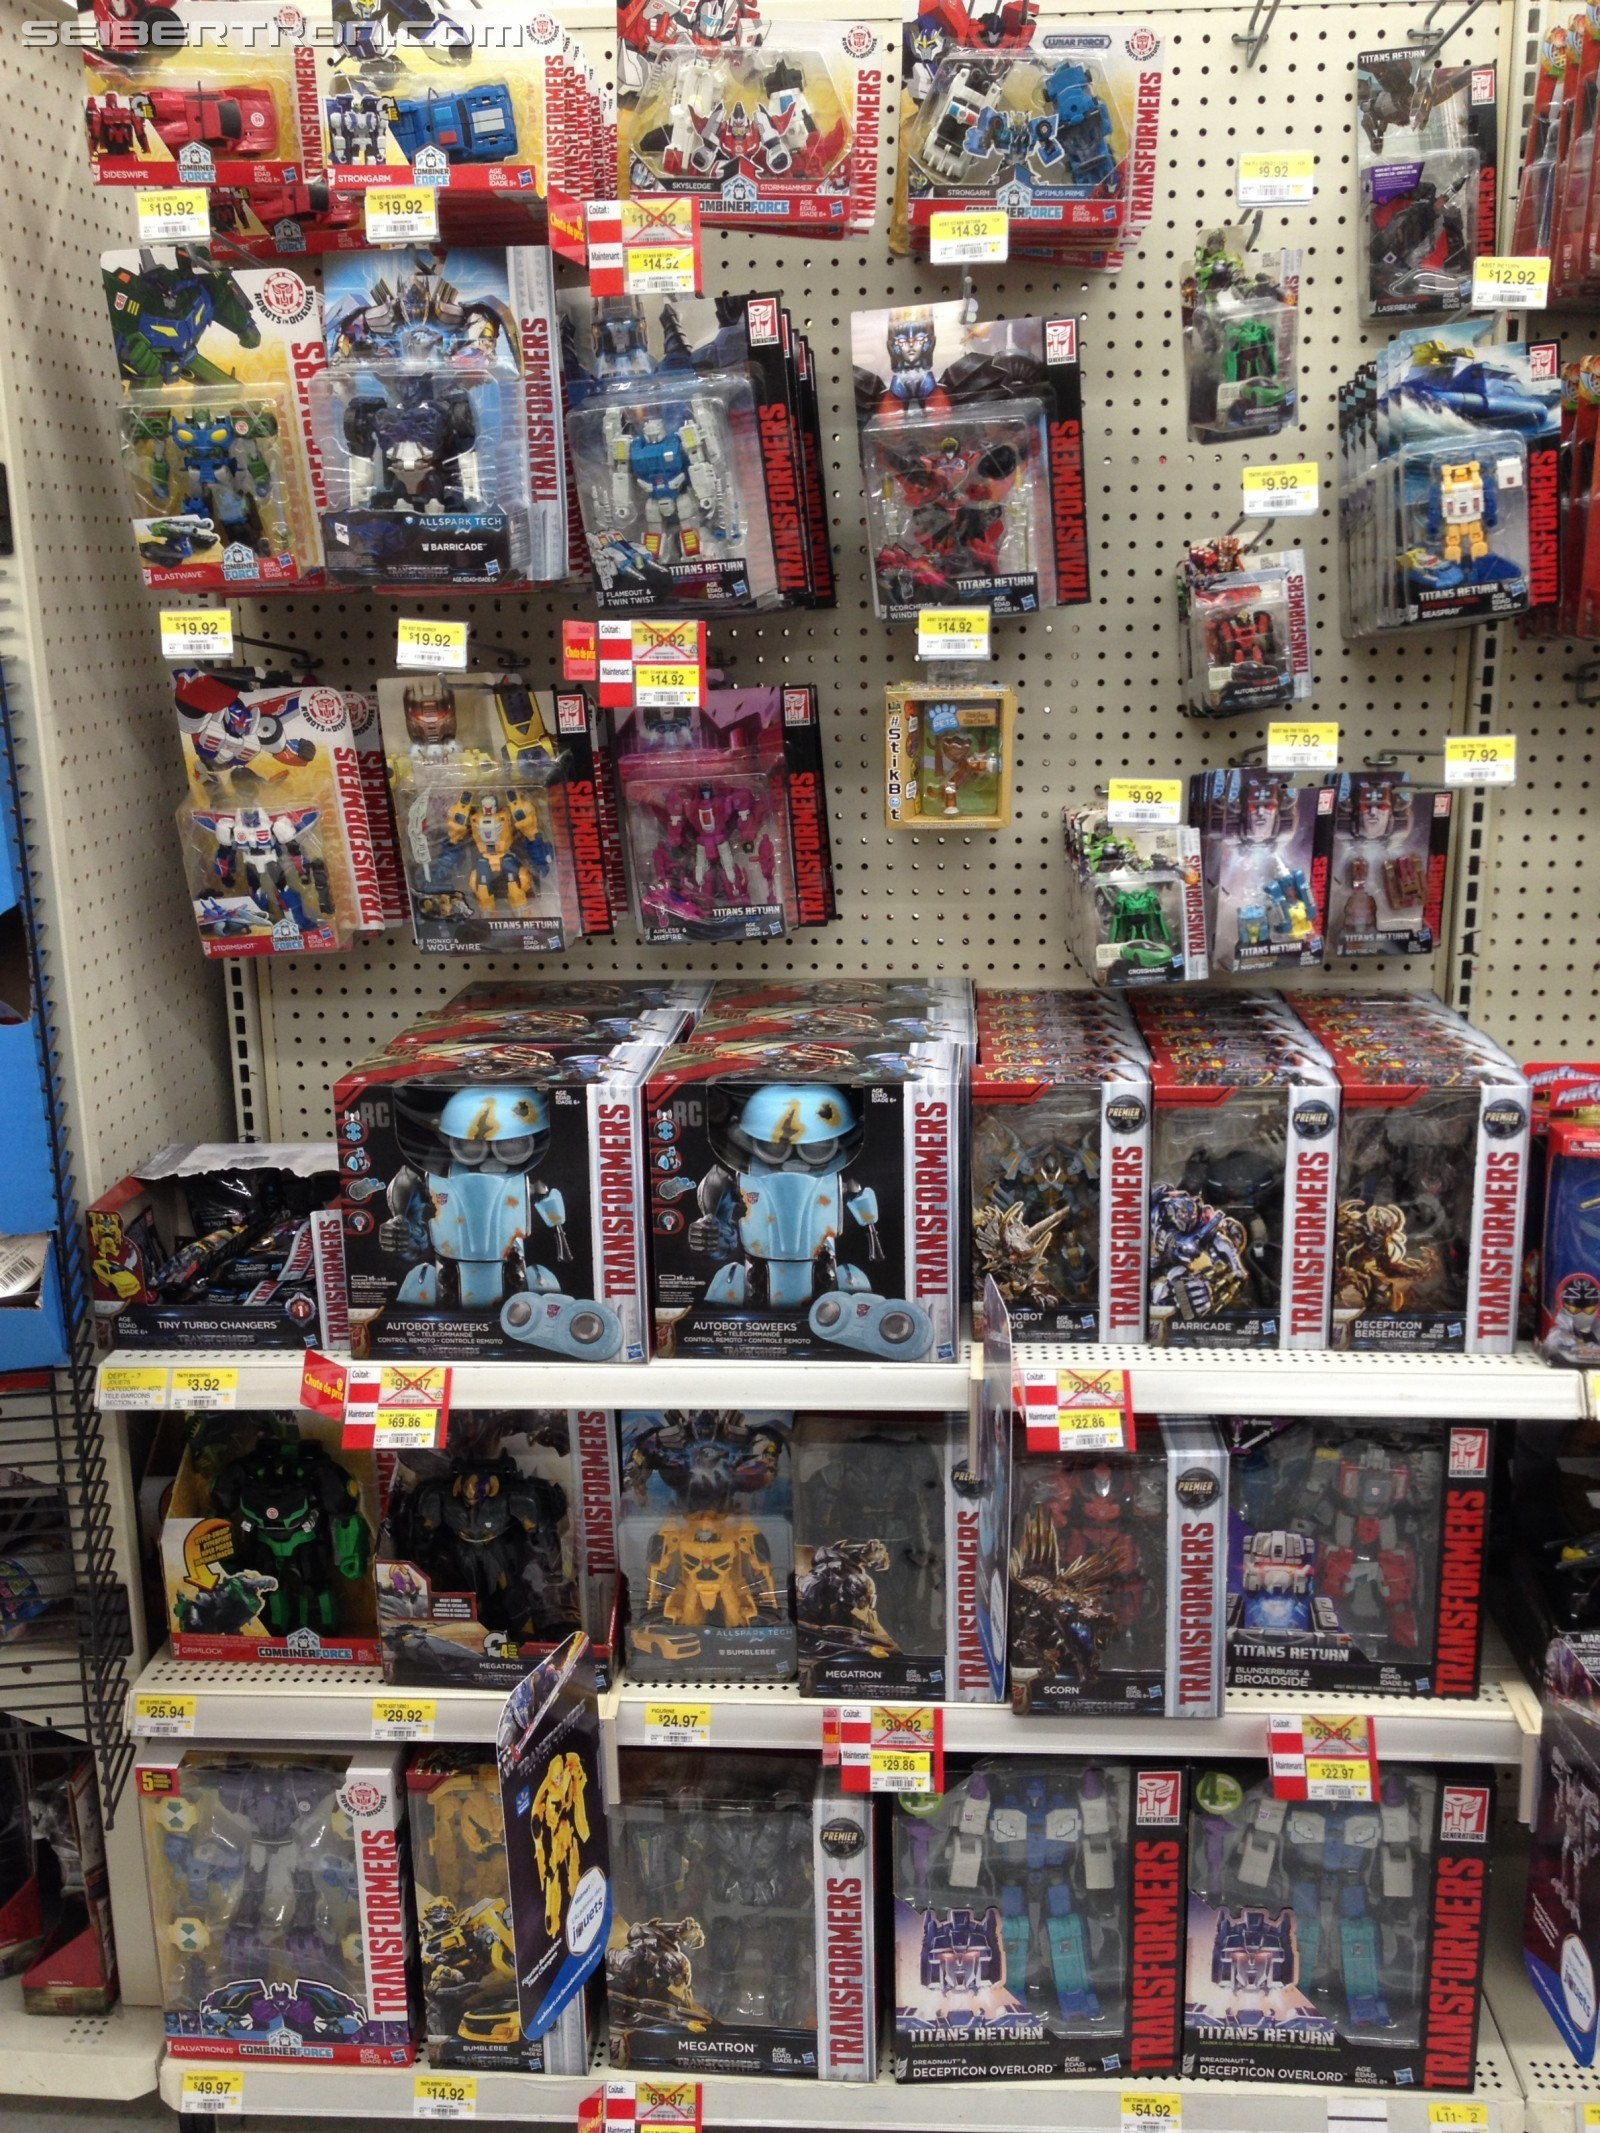 Transformers News: Rollback on Transformers Prices at Walmarts in Canada and the US